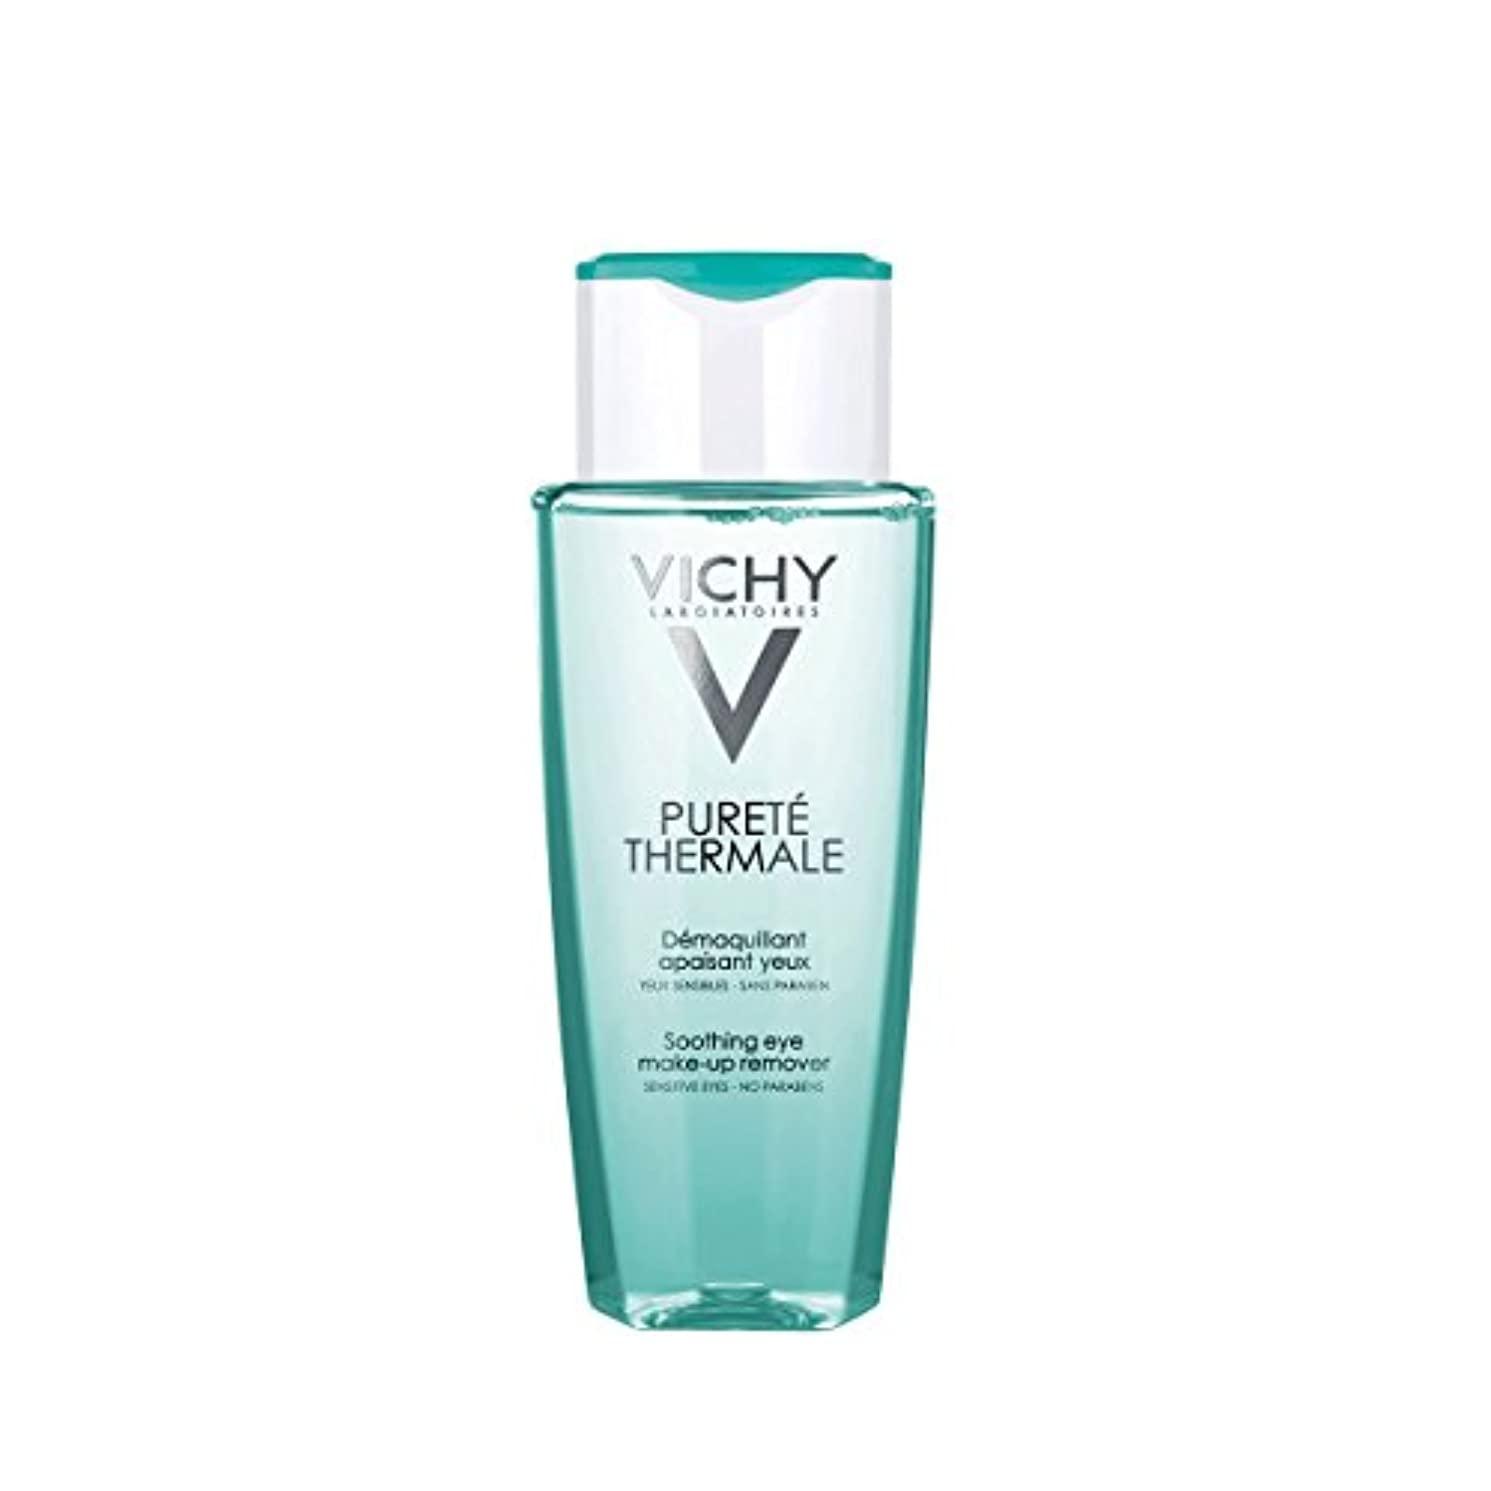 Vichy Purete Thermale Eye Cleanser 150ml [並行輸入品]